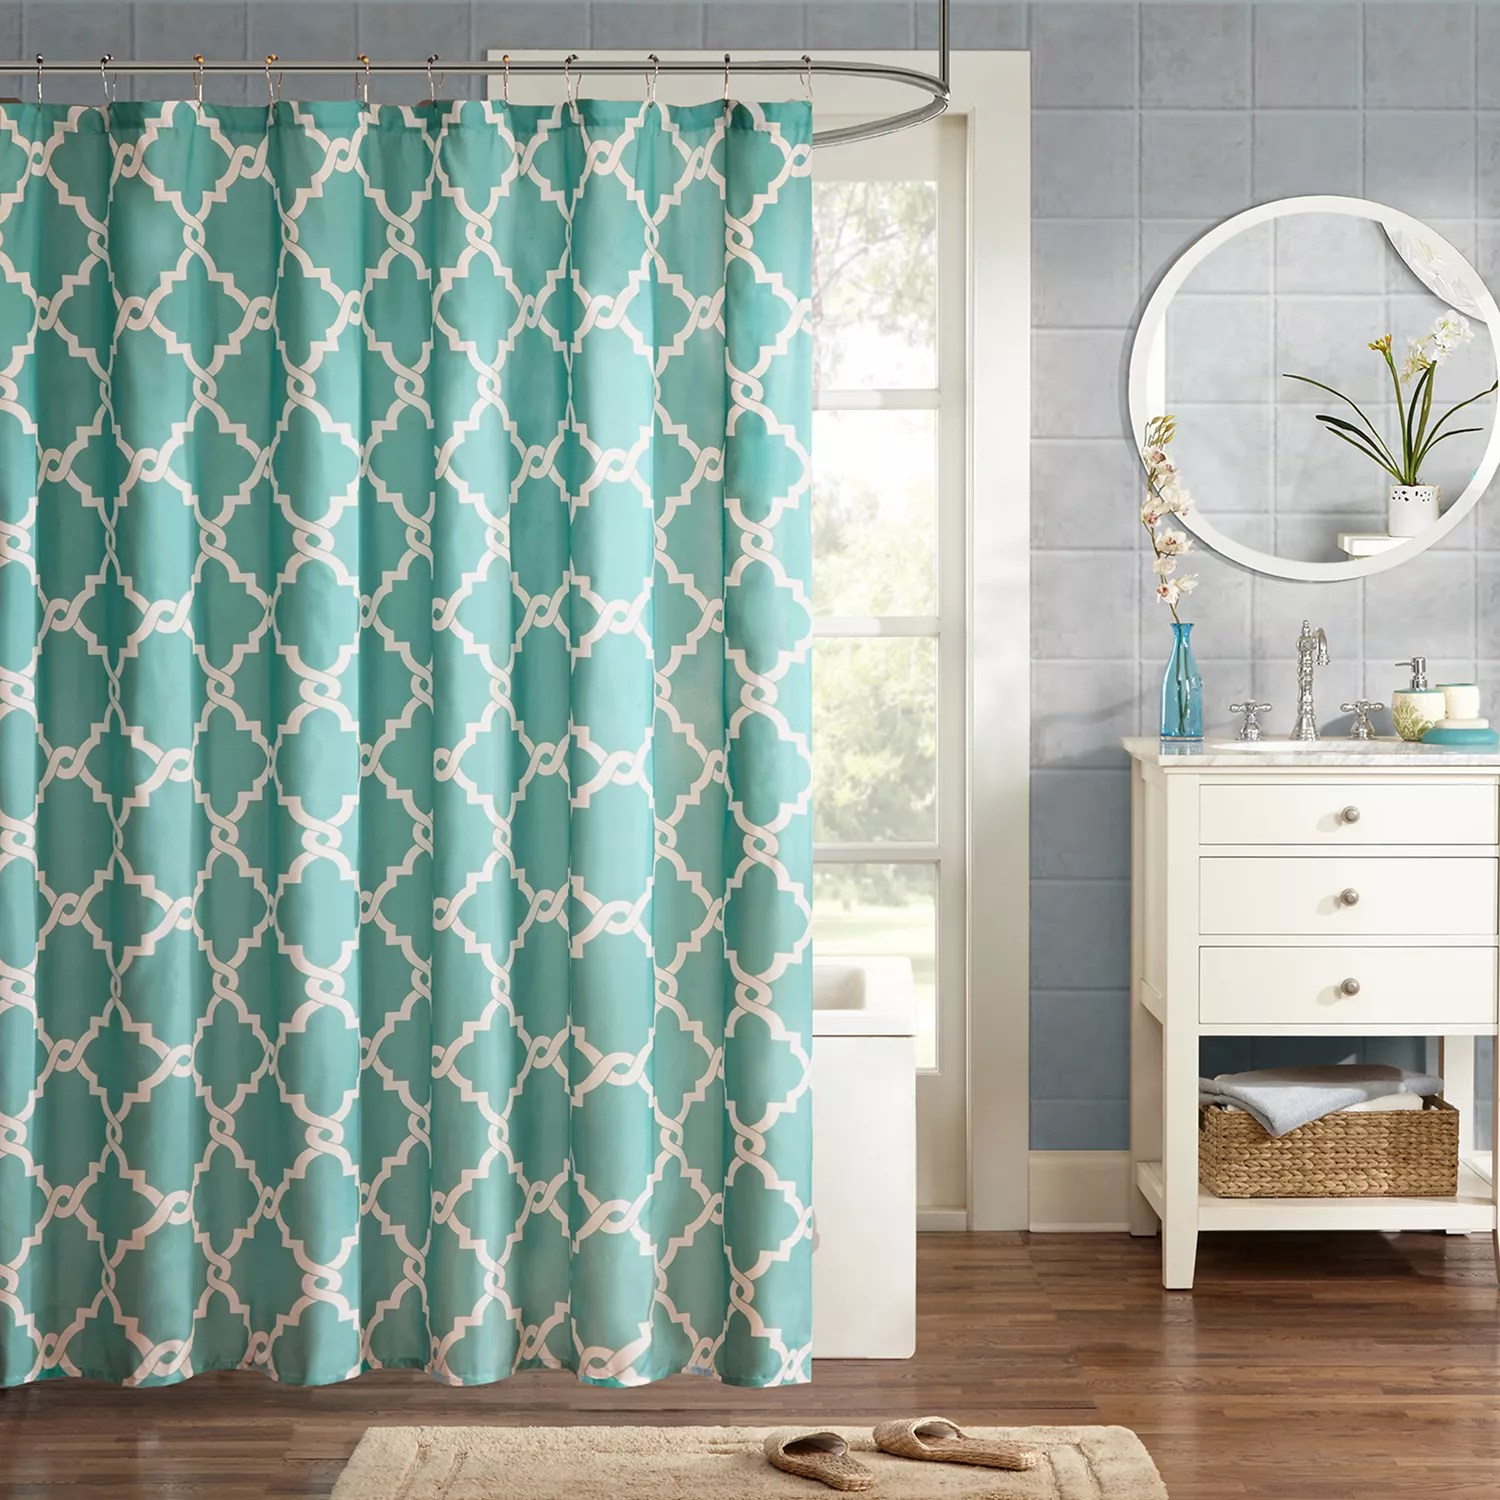 Kohls Com Shower Curtains Madison Park Essentials Almaden Shower Curtain